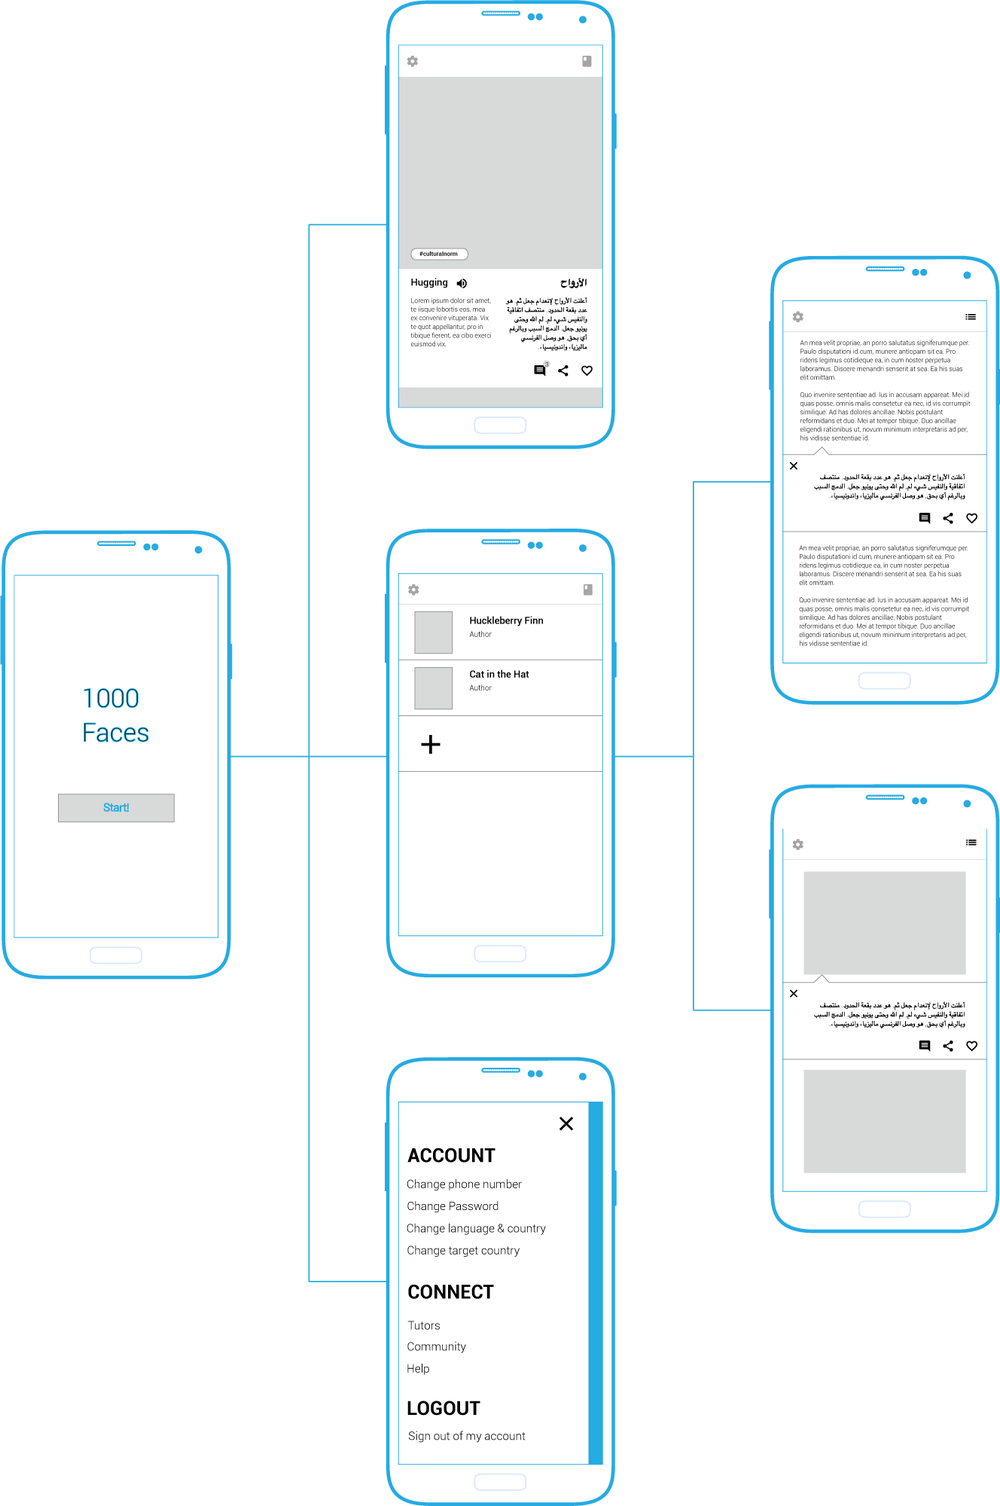 Working rapidly, one designer handled information architecture while another handled visual and content design. This overlapping workflow helped iterate quickly while making sure the development team had everything they needed to start building early on.